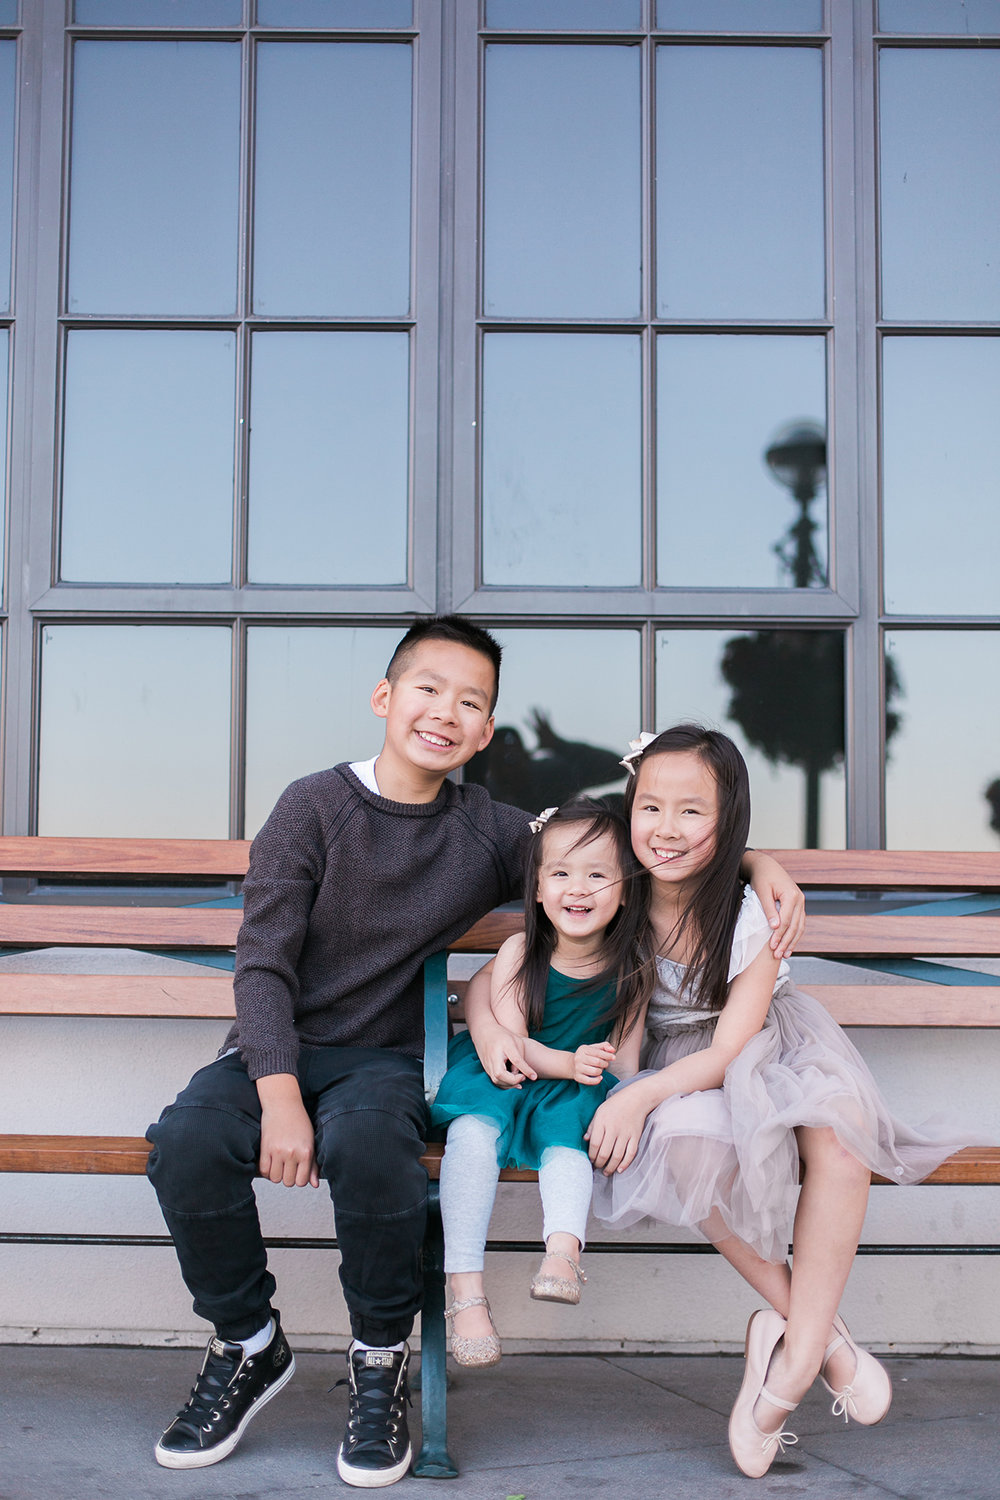 San_Francisco_Children_and_Family_Portrait_002.jpg